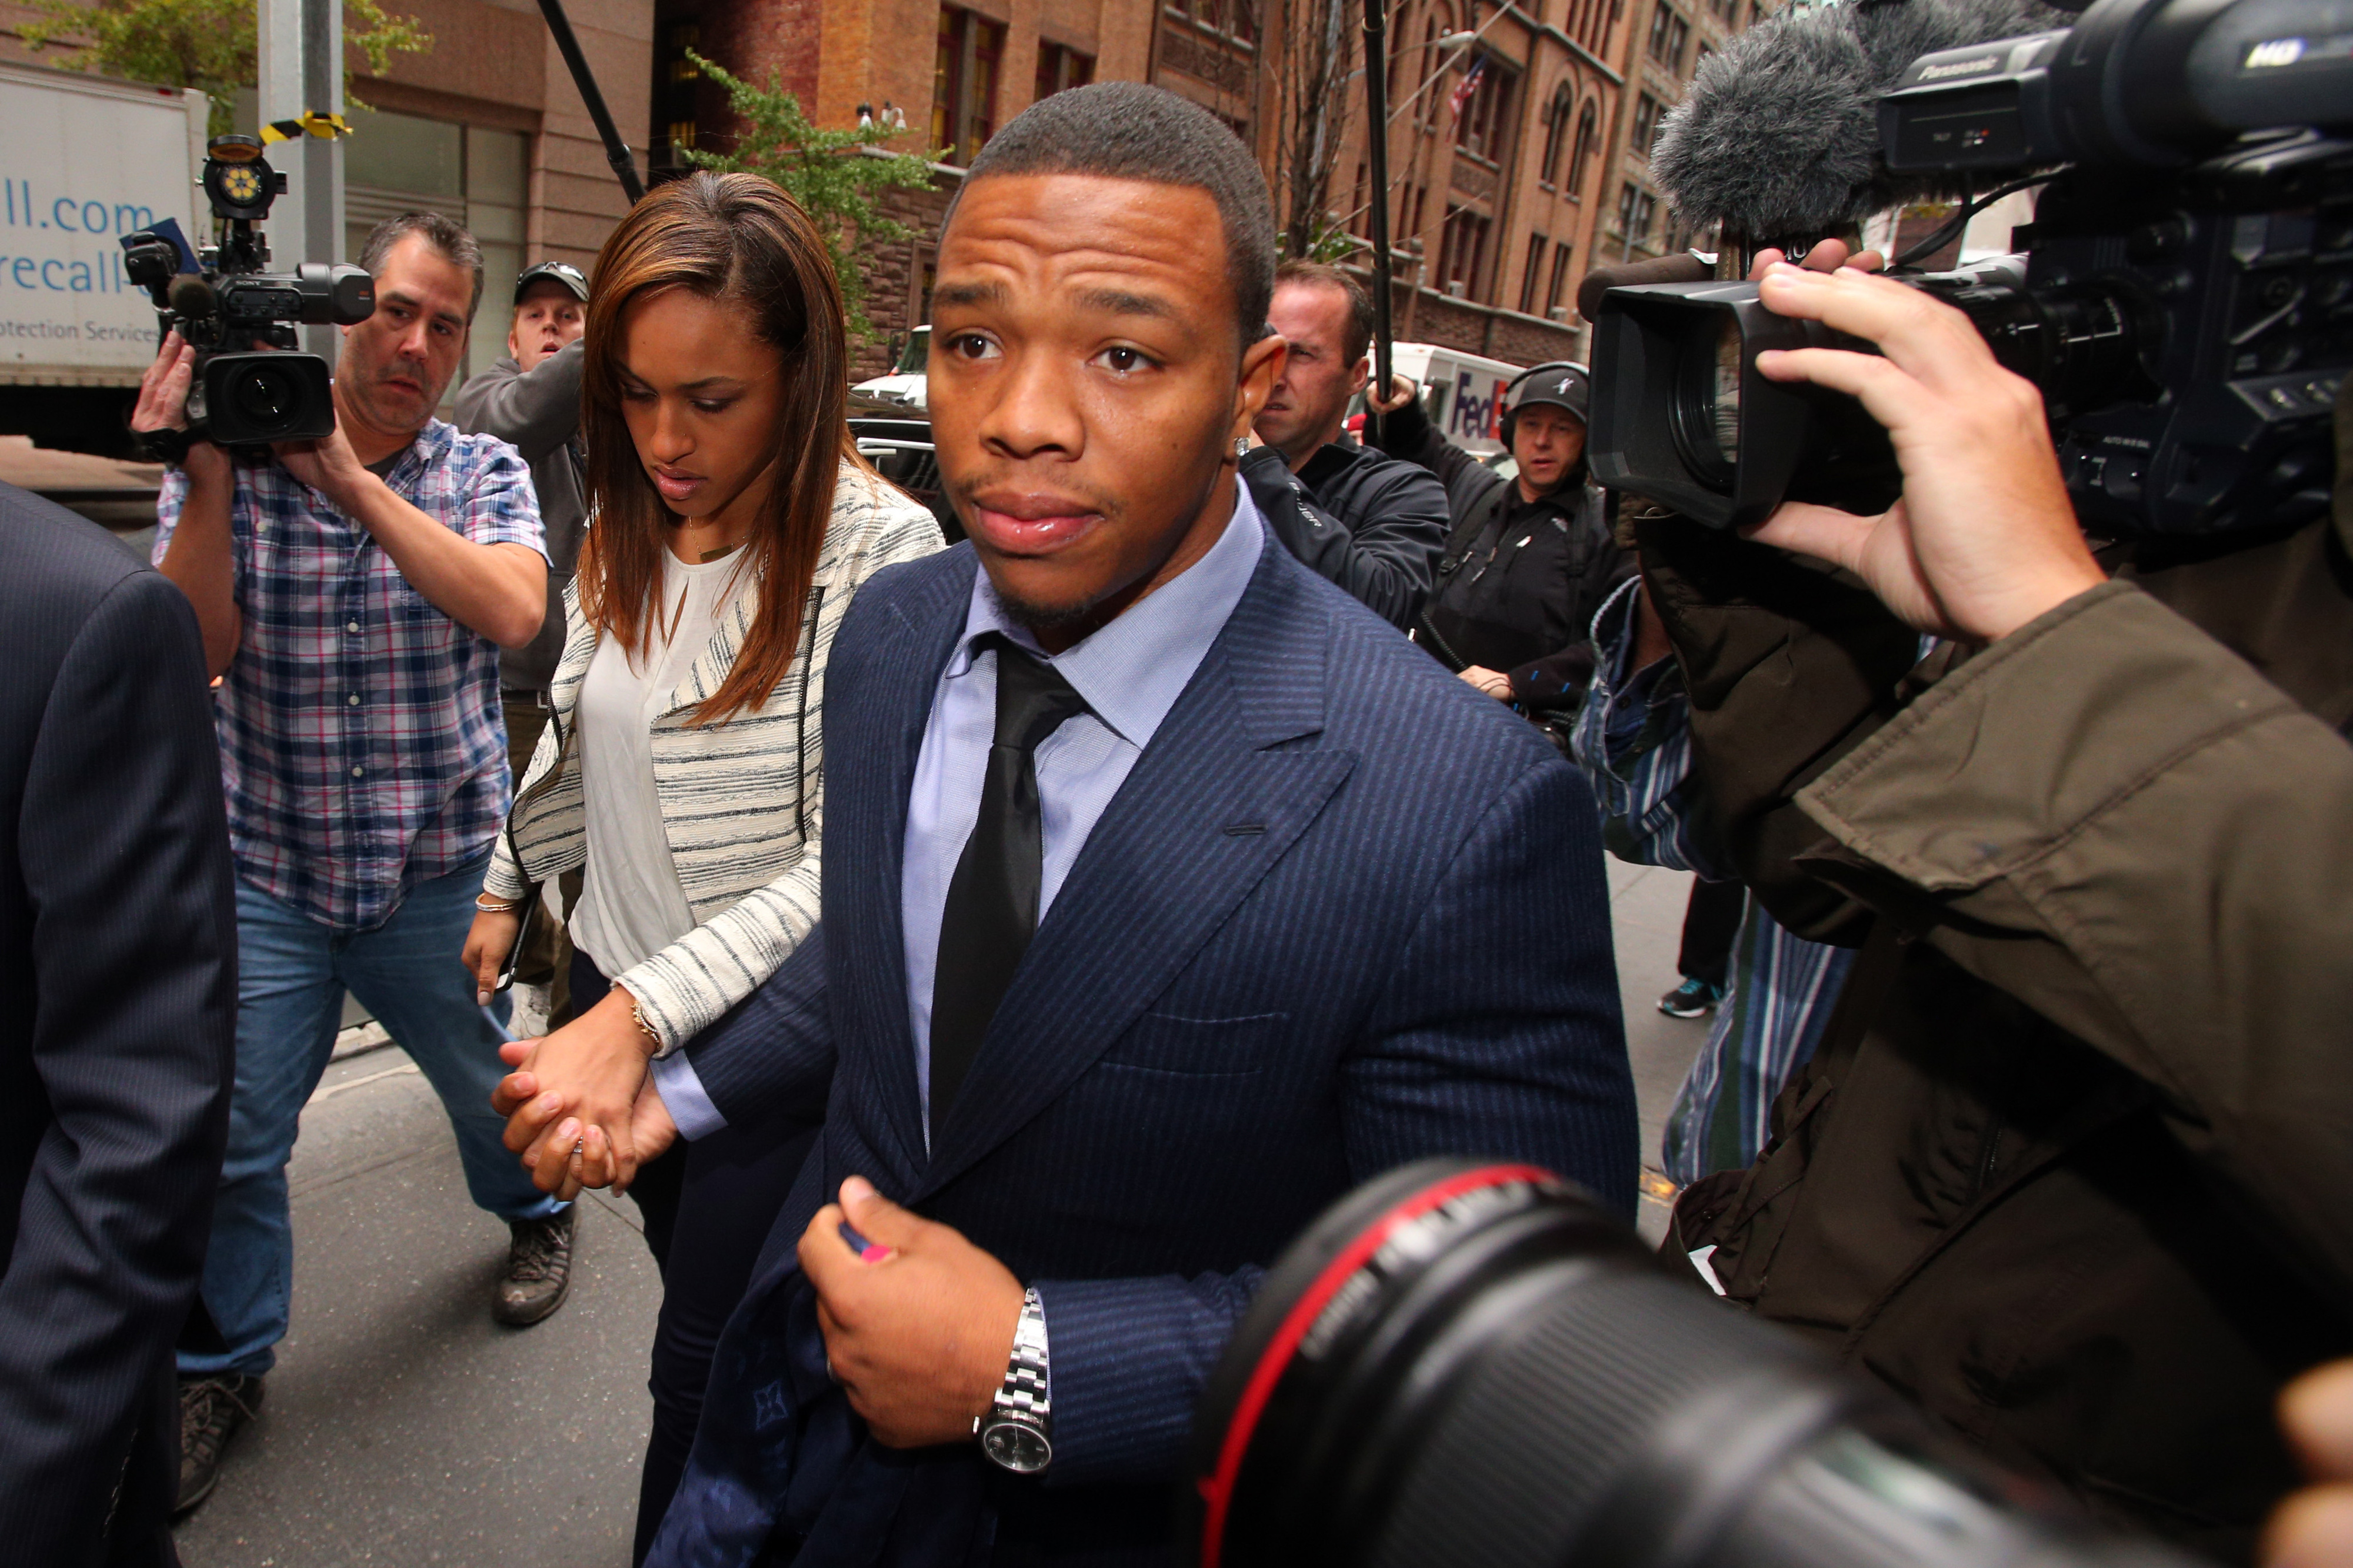 Ray Rice told Roger Goodell he hit fiancee, Ravens GM testifies